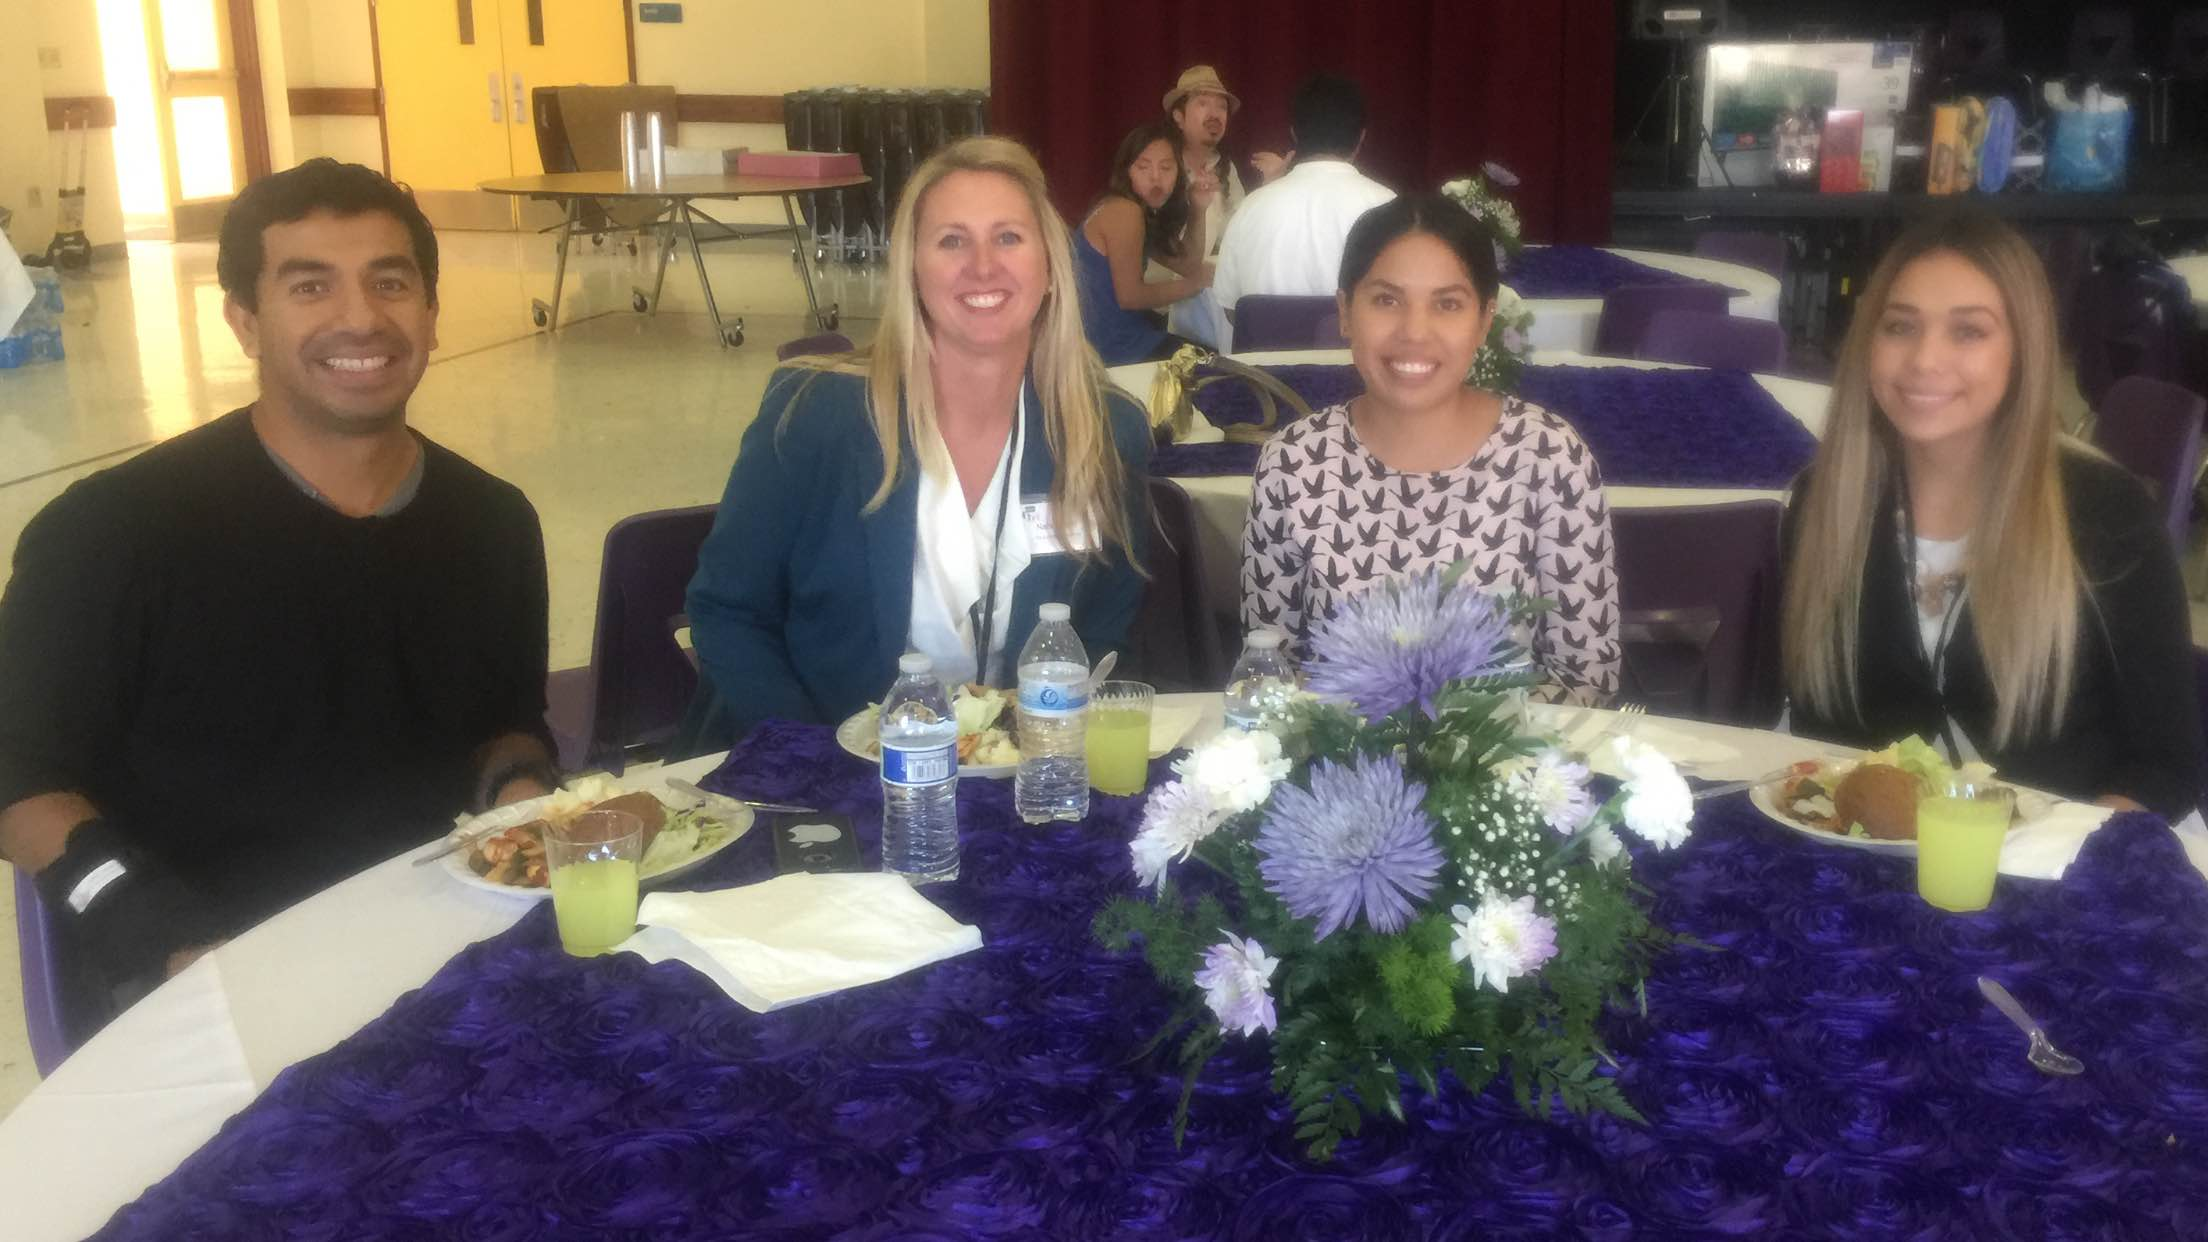 Our CLM Team during lunch time: Ismael Mondragon, Nancy Kelley, Marlene Ibarra, and Grisel Ibarra.